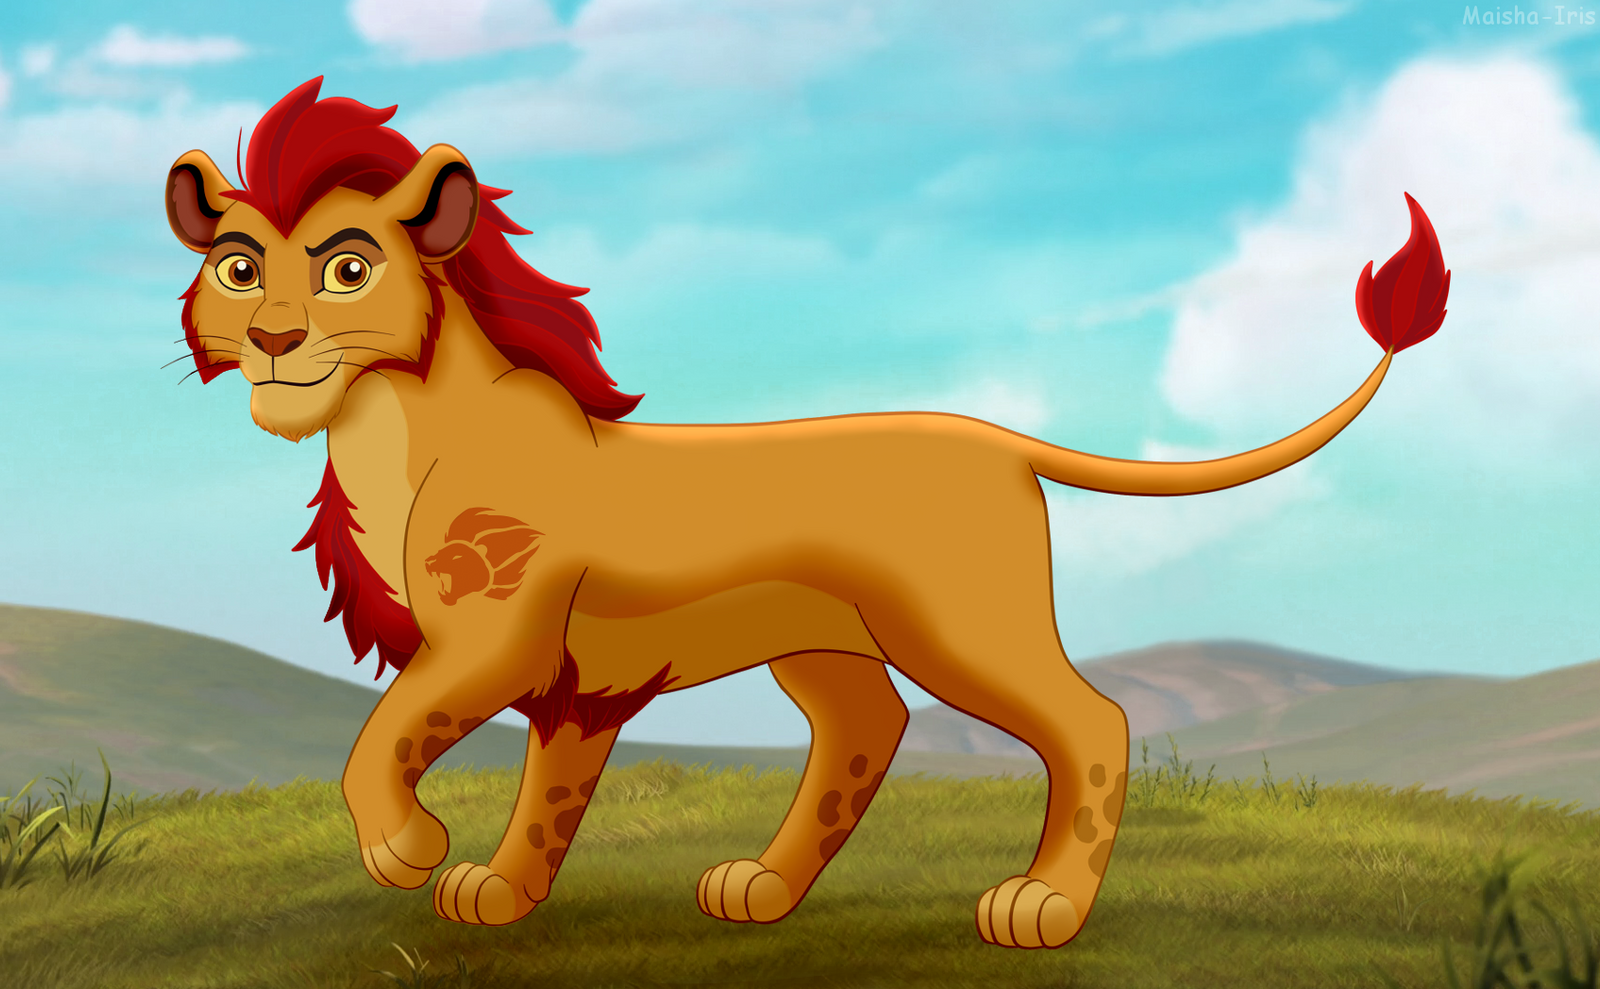 Teen kion by maisha iris on deviantart - Kion le roi lion ...